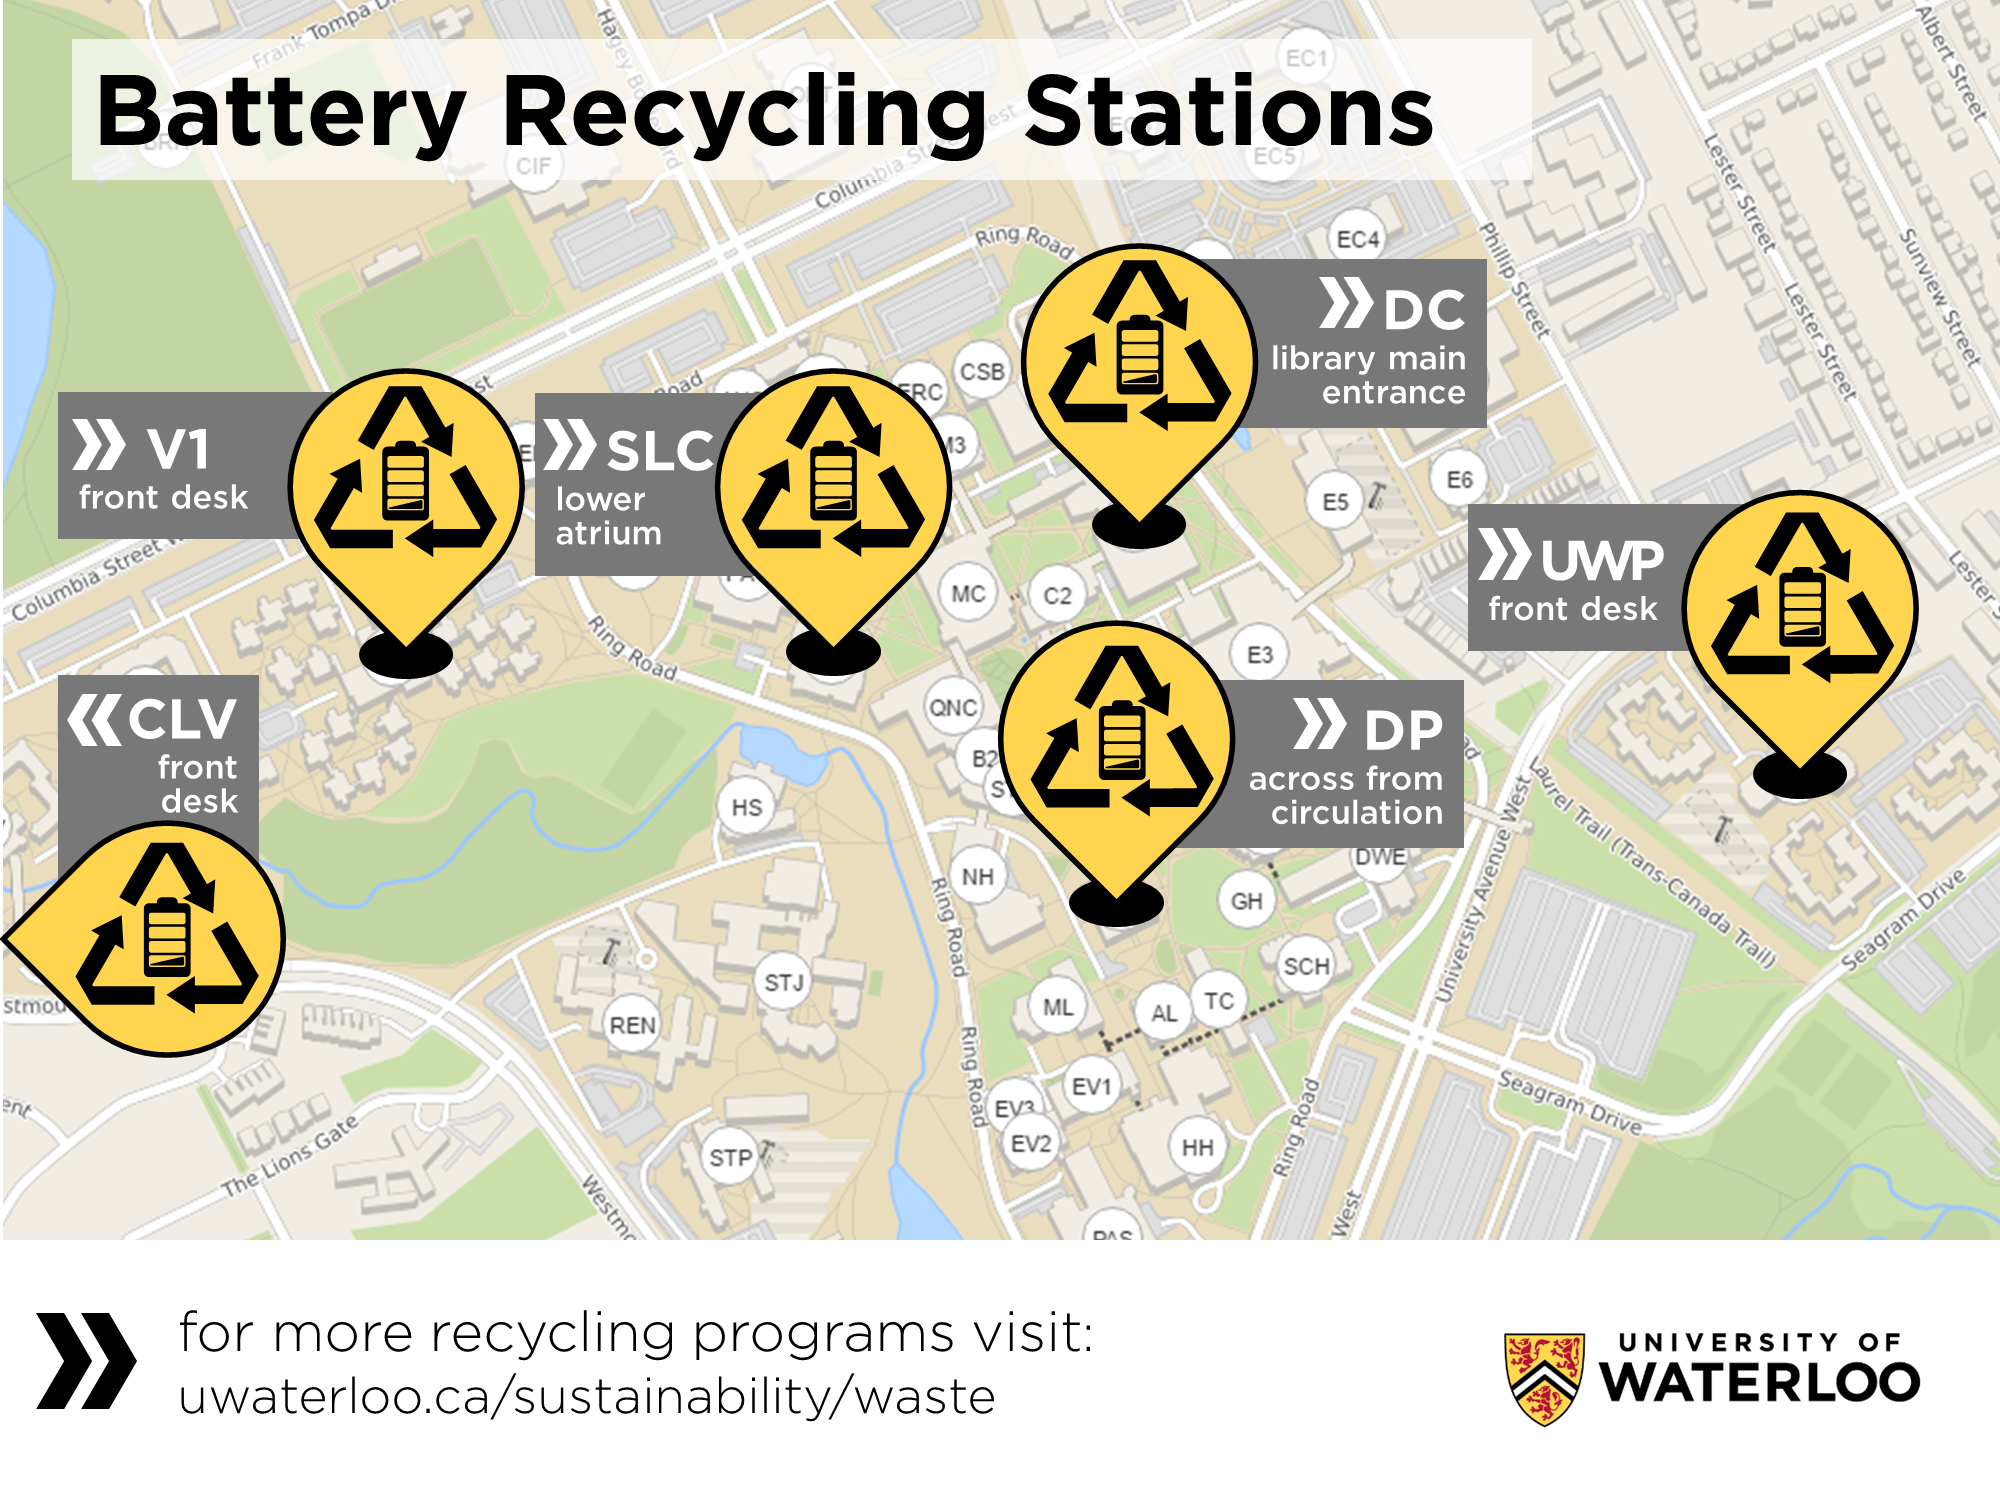 Battery recycling stations on campus